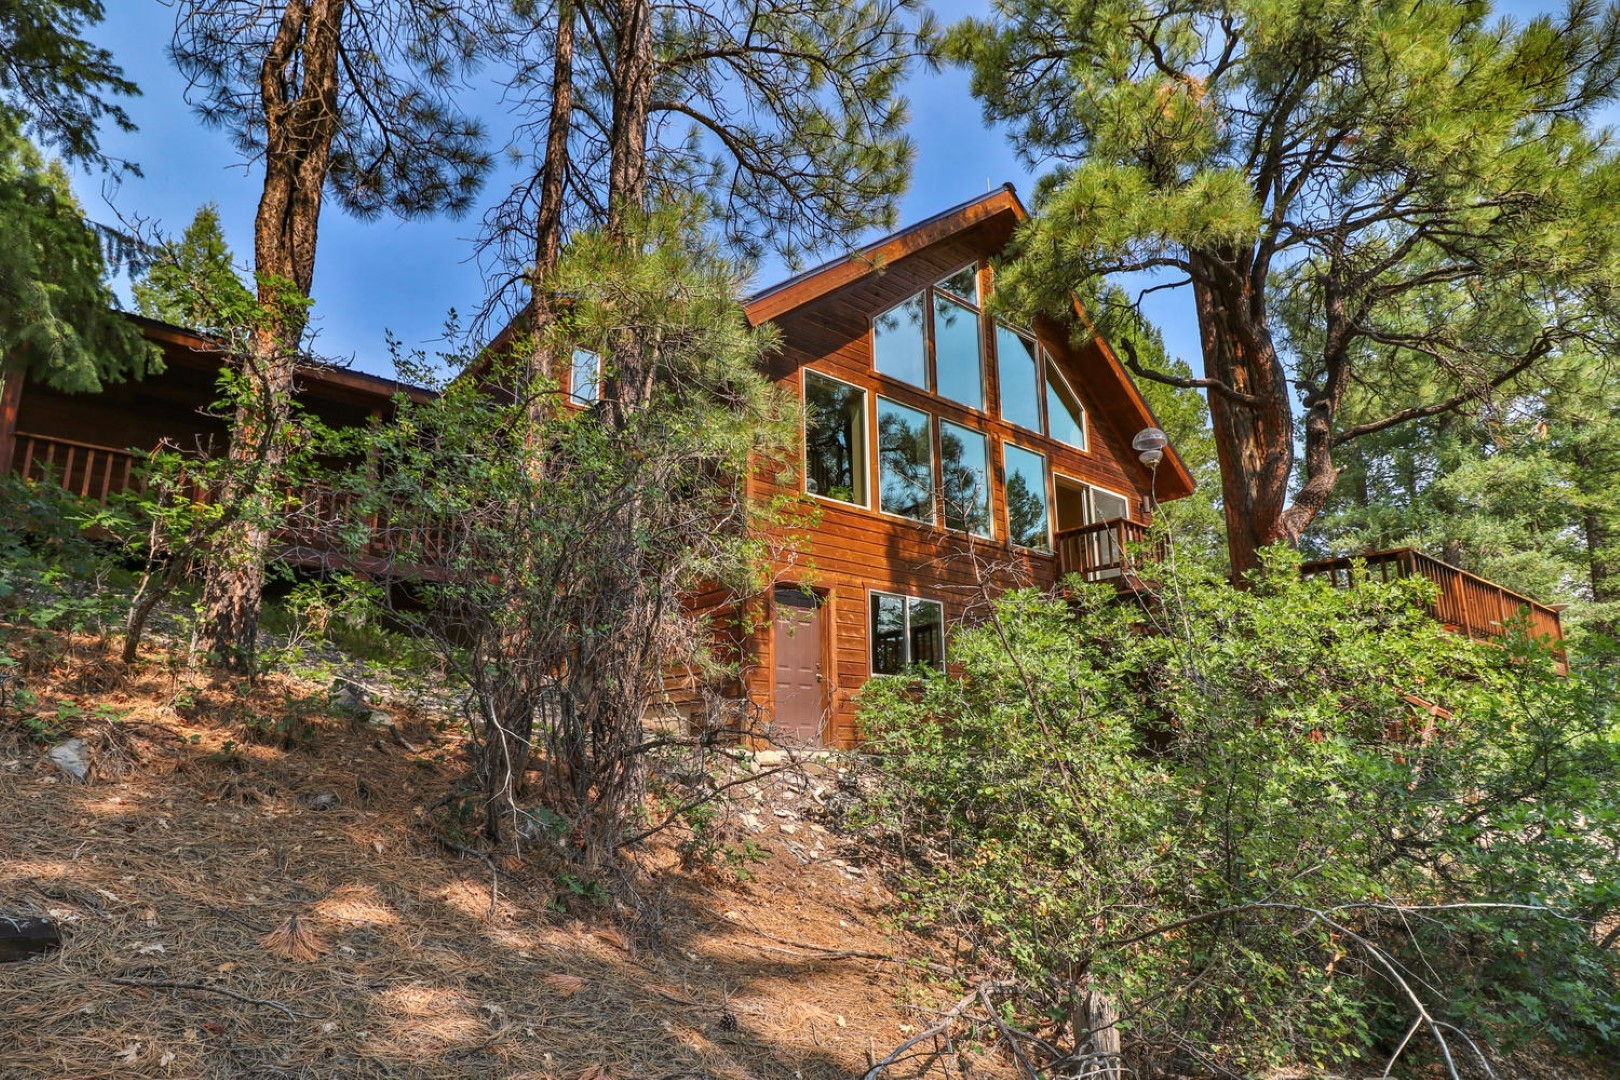 621 Cool Pines Dr Pagosa-large-011-42-621 Cool Pines-1500×1000-72dpi